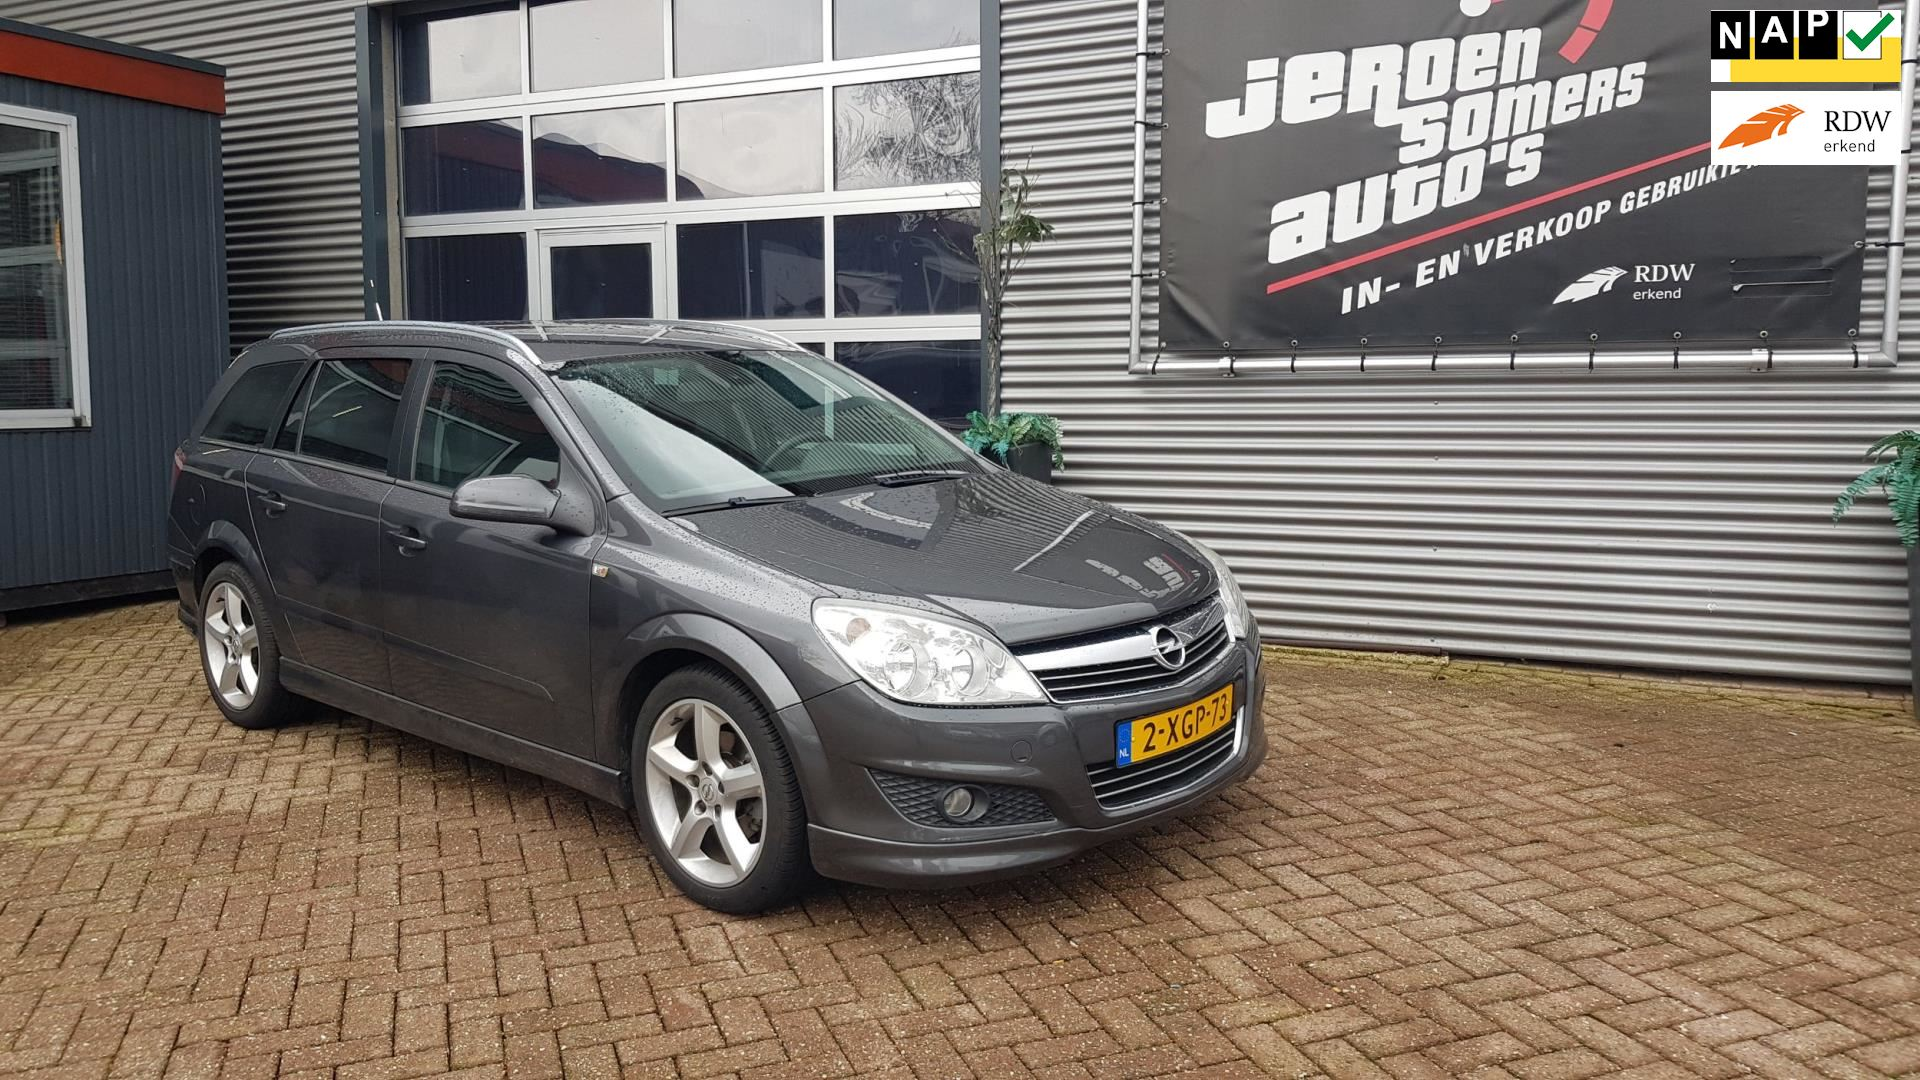 Opel Astra Wagon occasion - Jeroen Somers Auto´s